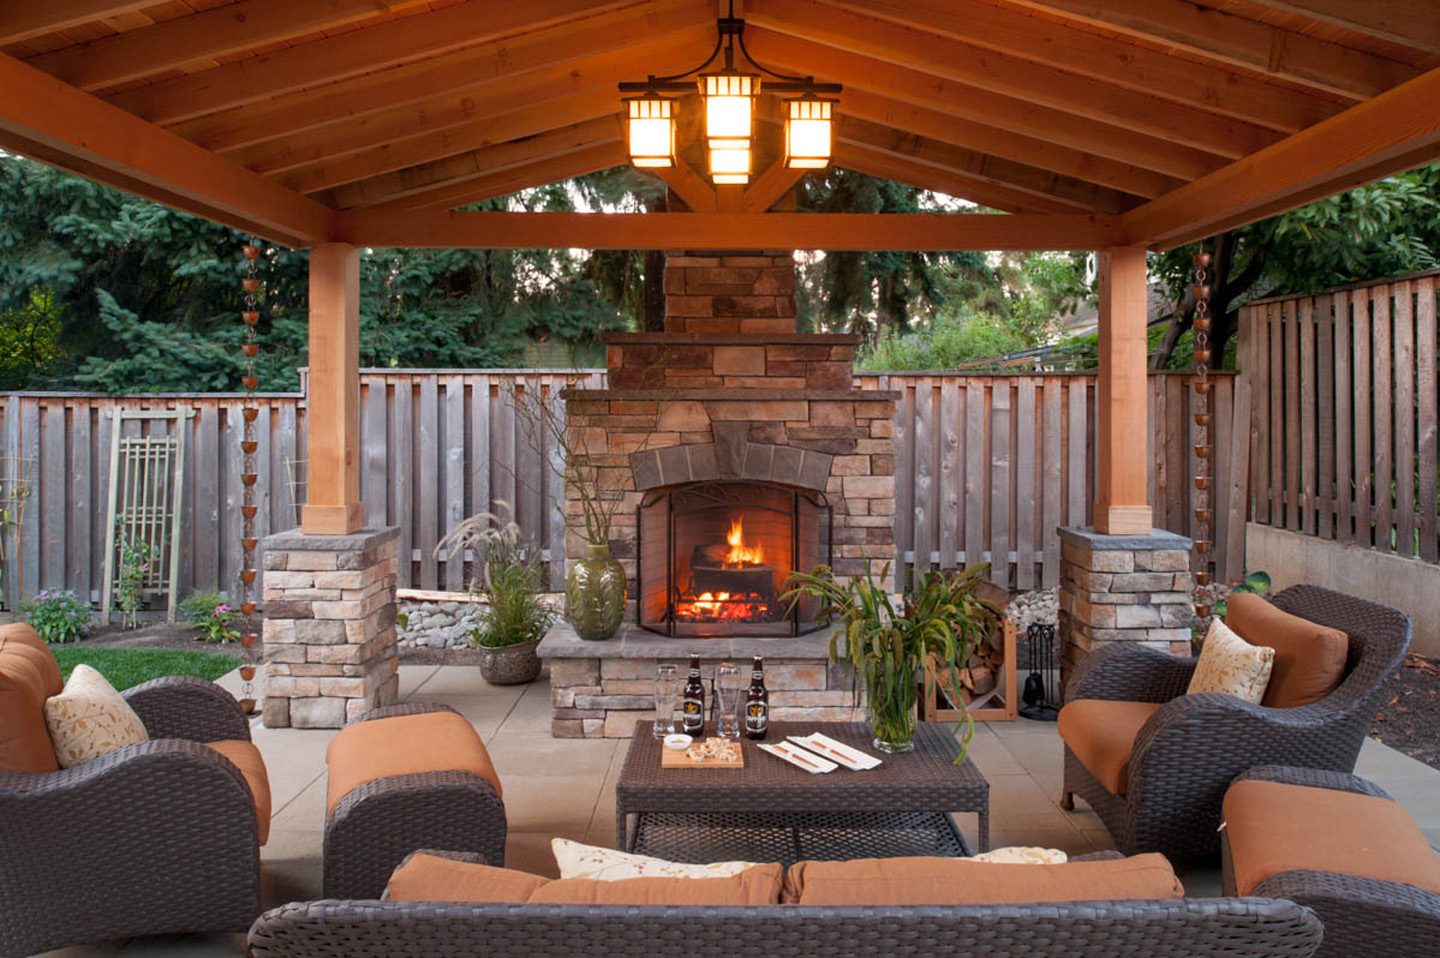 20 Gazebos In Outdoor Living Spaces Paradise Restored Landscaping